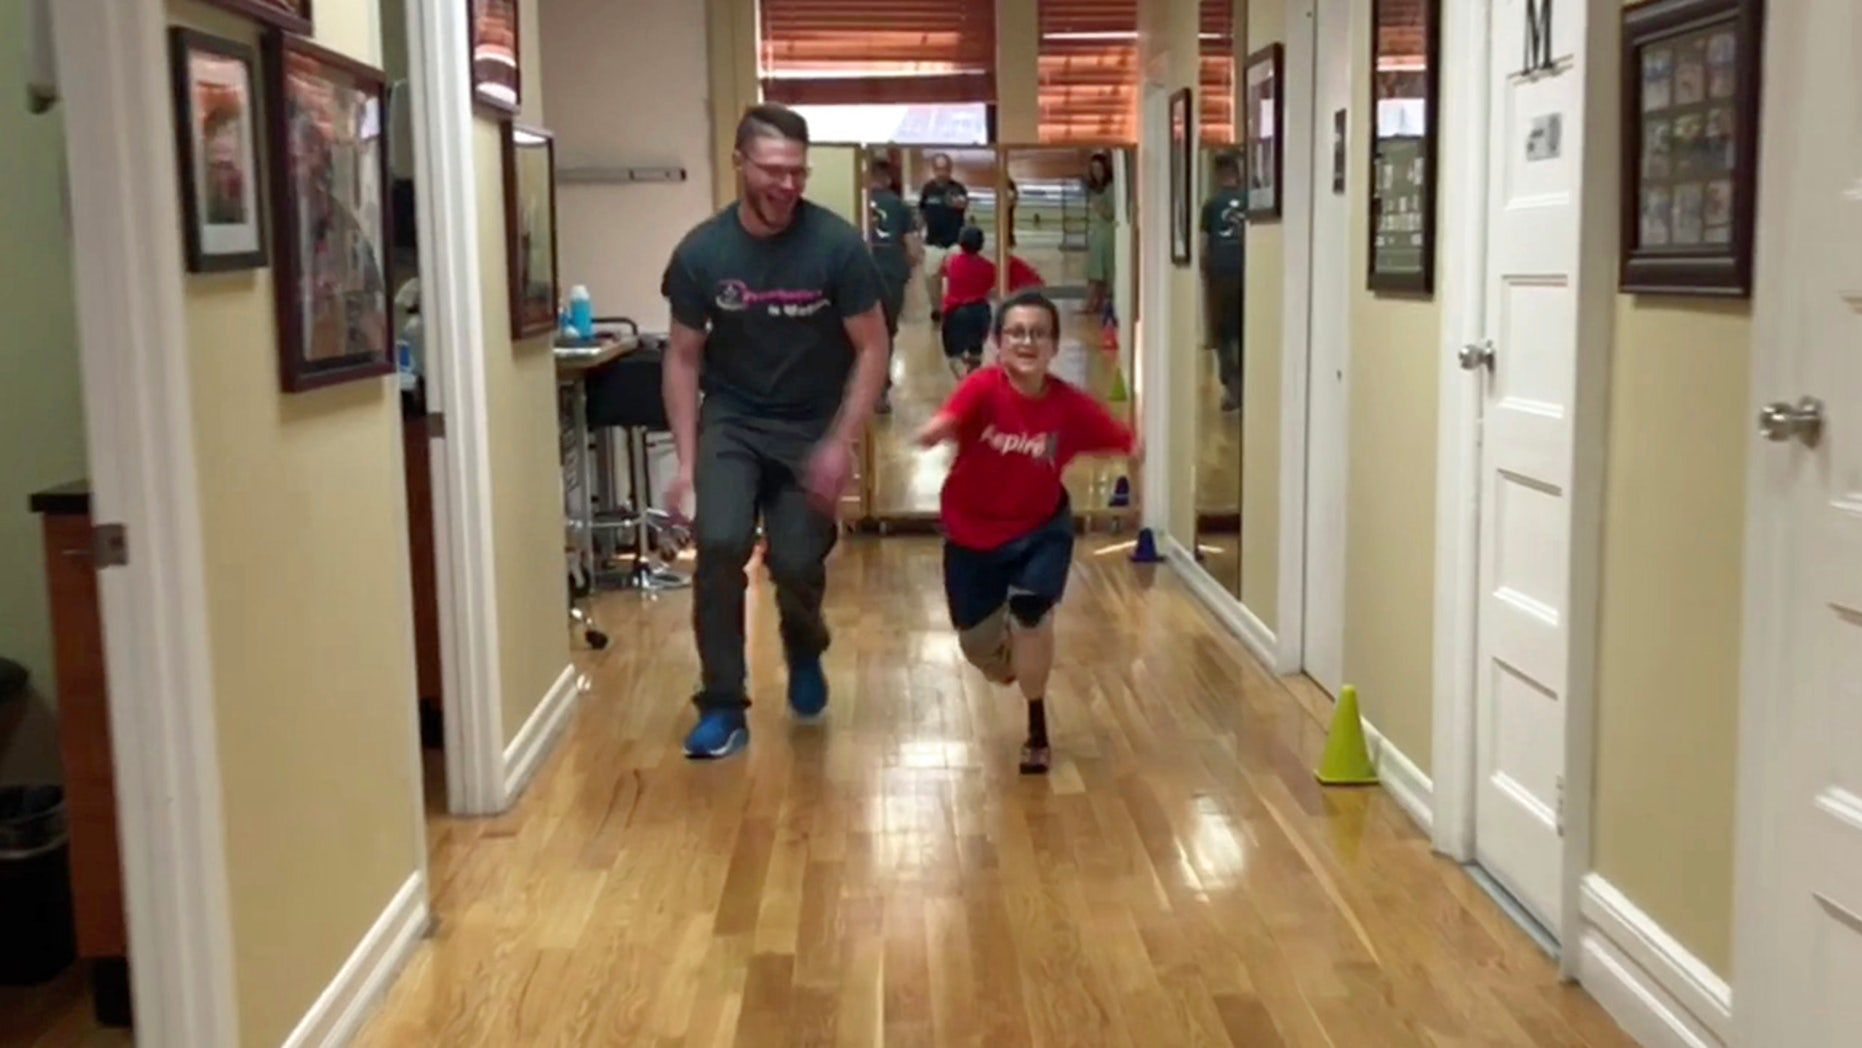 Quad amputee Moshe runs for the very first time, thanks to state-of-the-art prosthetics).